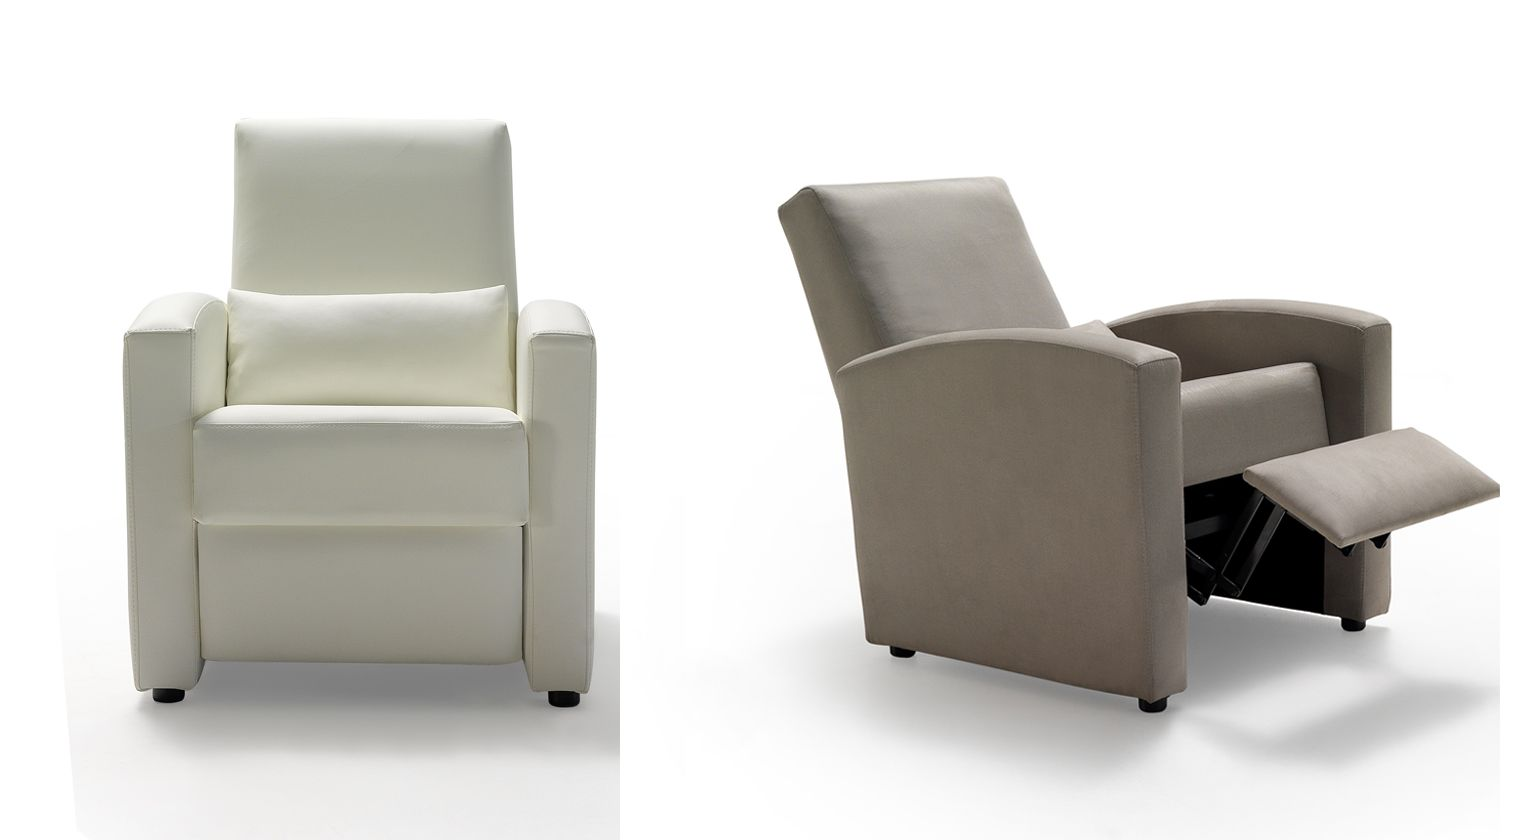 sofa convertibles sectional microfiber sillón relax madrid .sillones